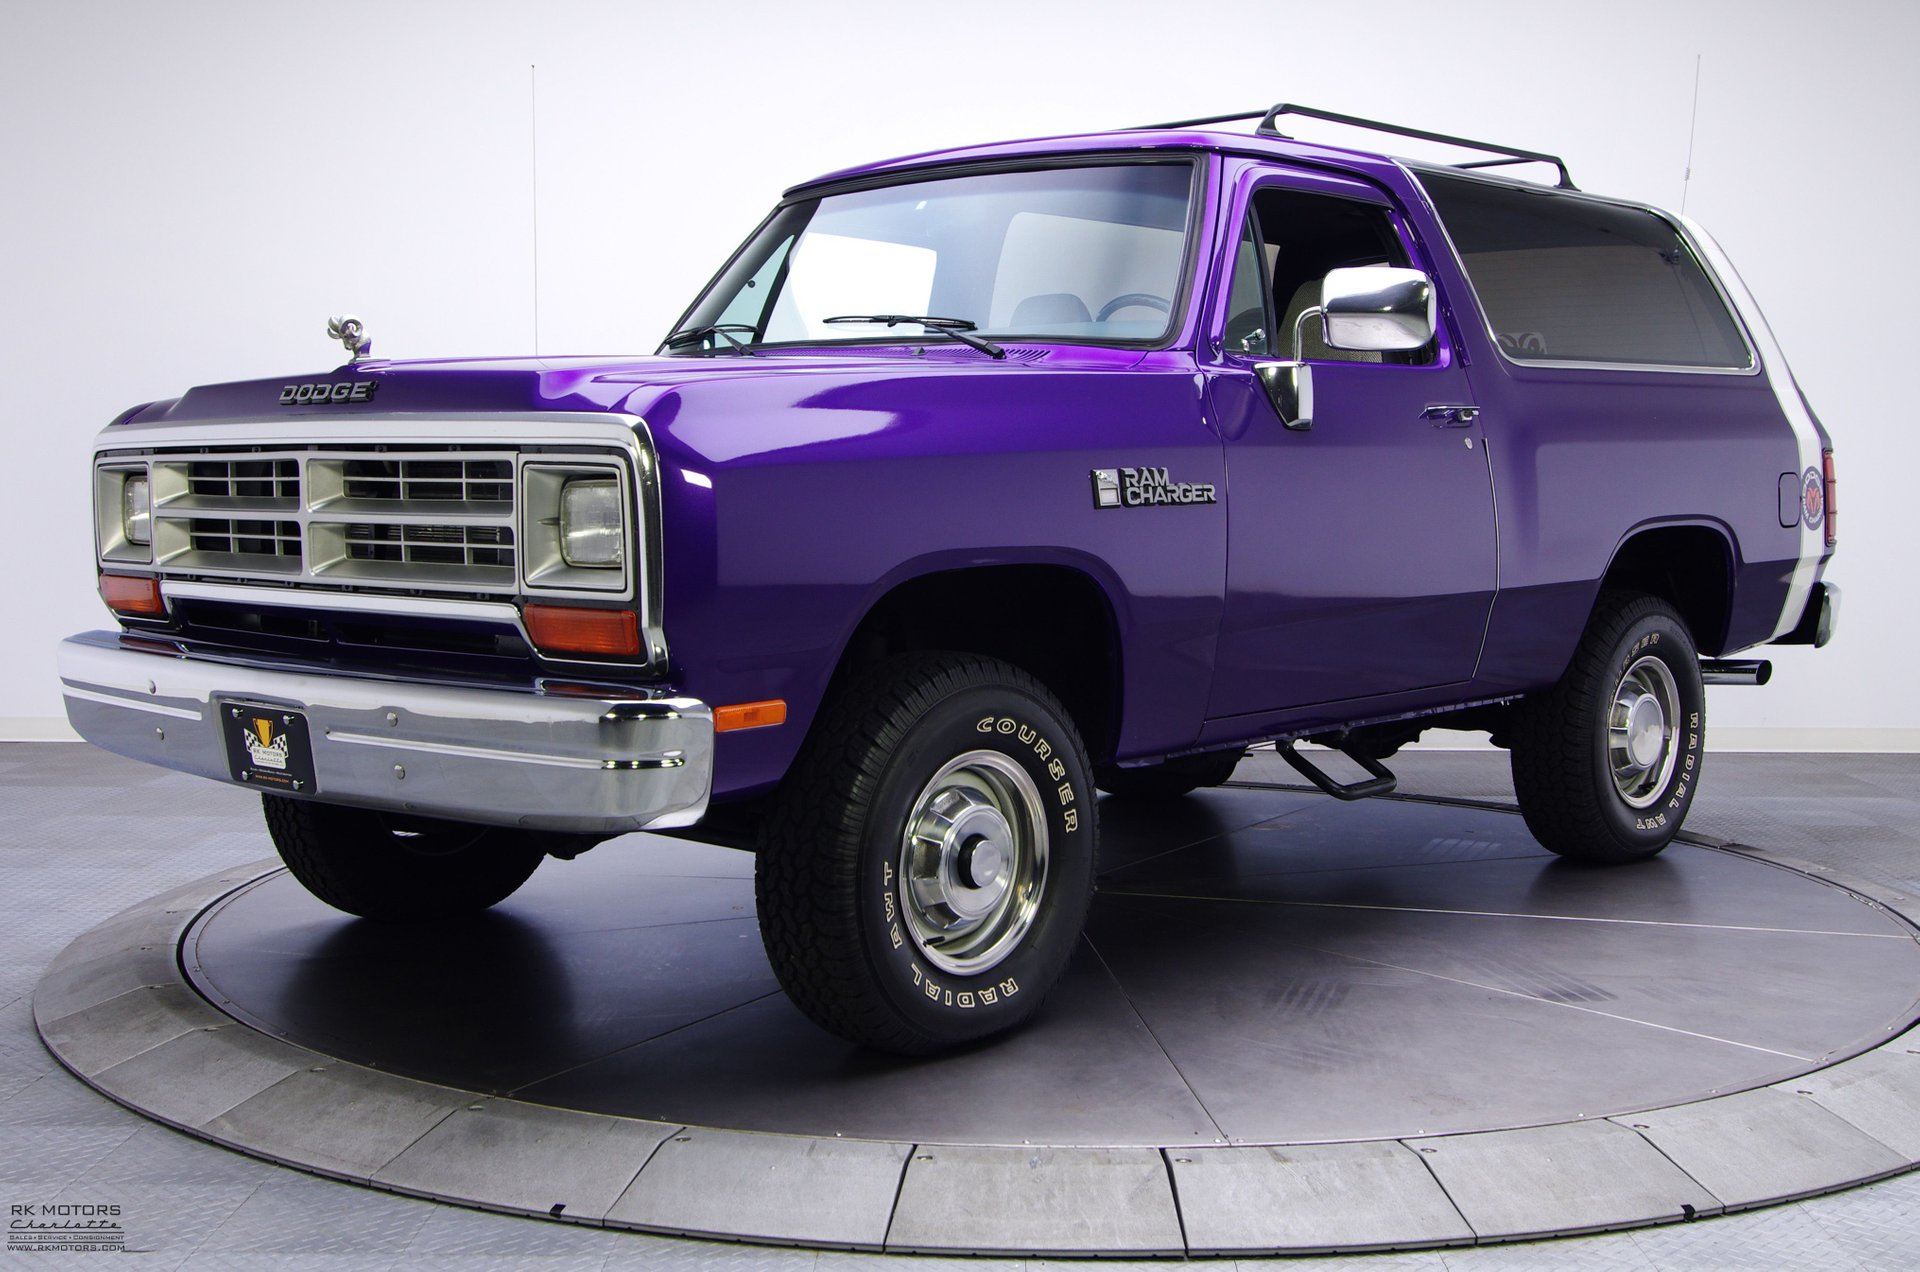 132508 1990 Dodge Ramcharger Rk Motors Classic Cars And Muscle Cars For Sale